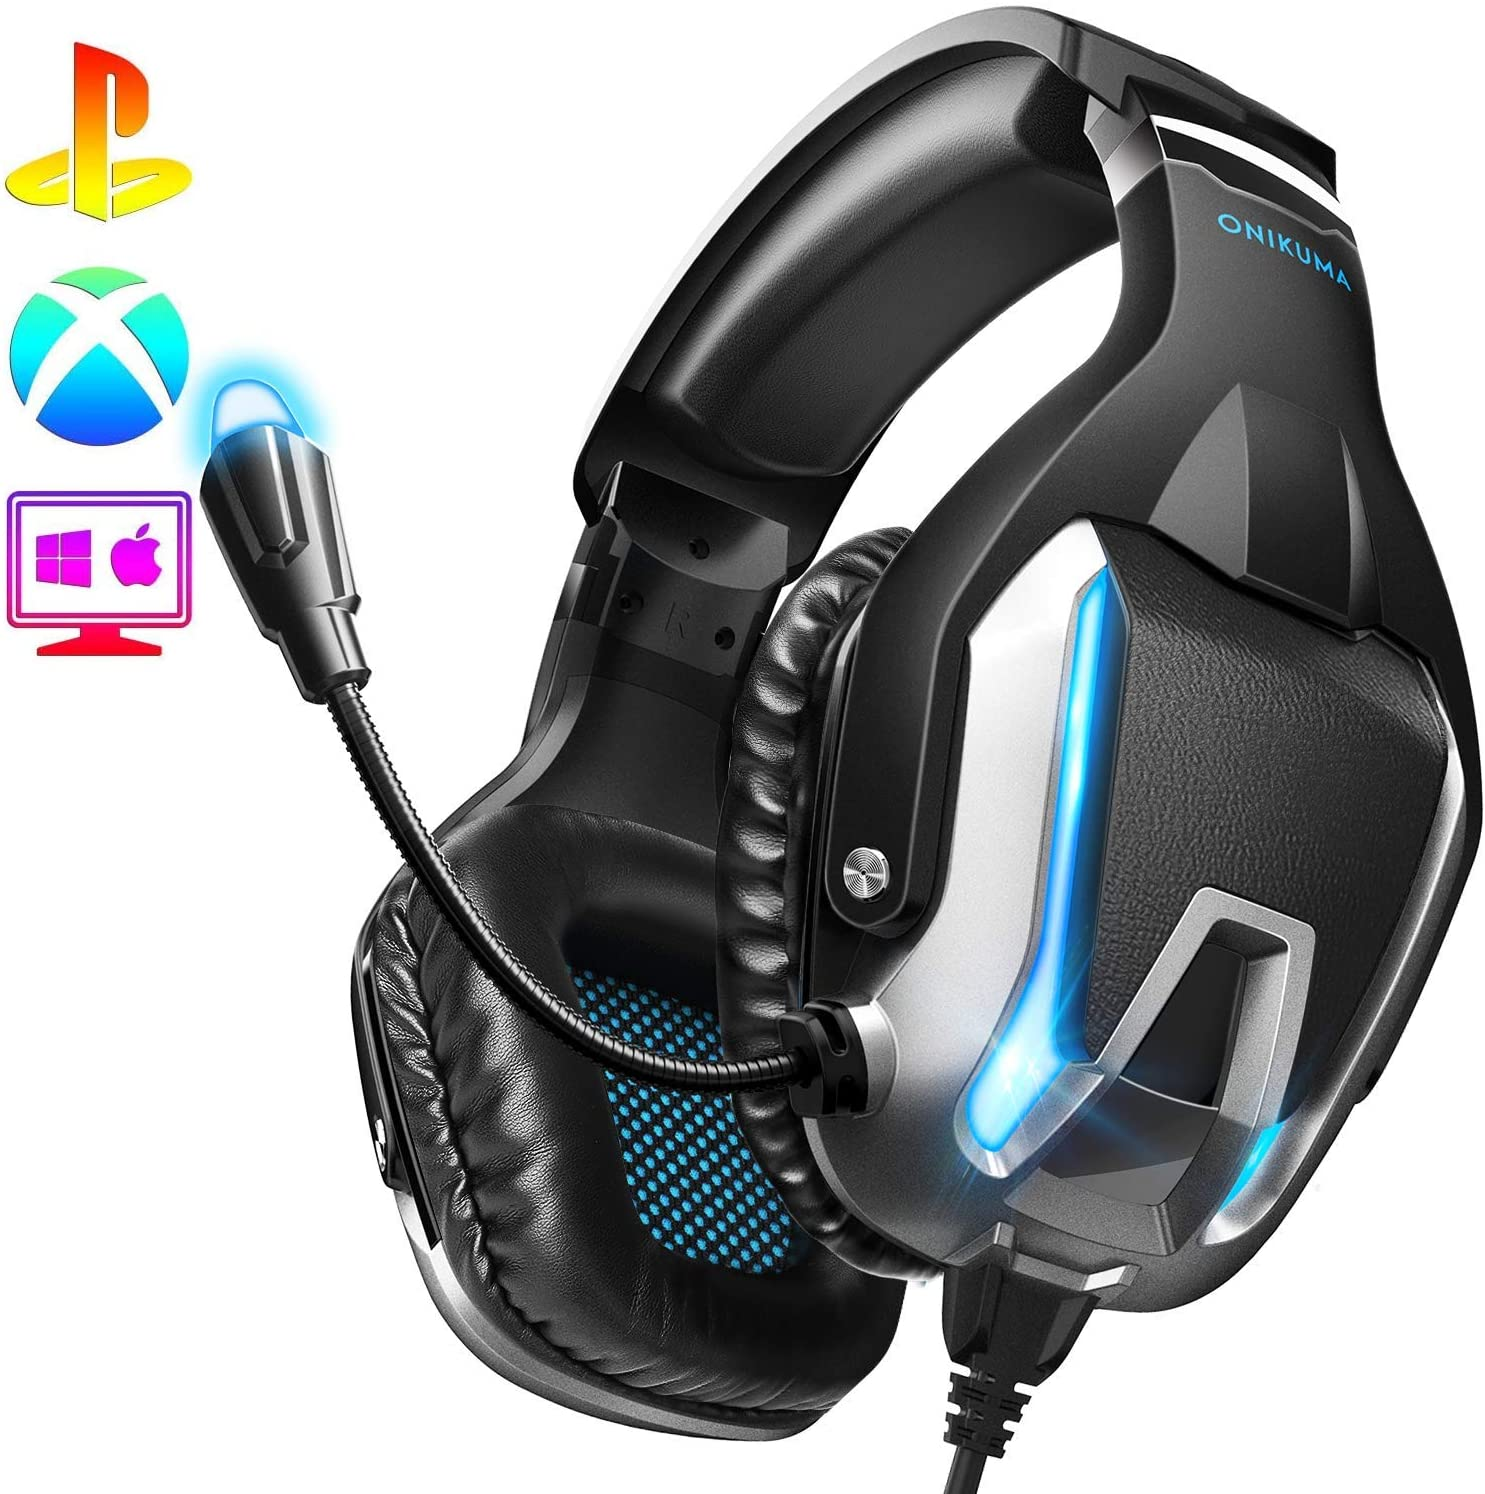 ONIKUMA Gaming Headset- PS4 Headset Xbox one Headset Gaming Headphone with Surround Sound, LED Light & Noise Canceling Microphone for PS4,PC,Mac,Xbox One(Adapter Not Included)